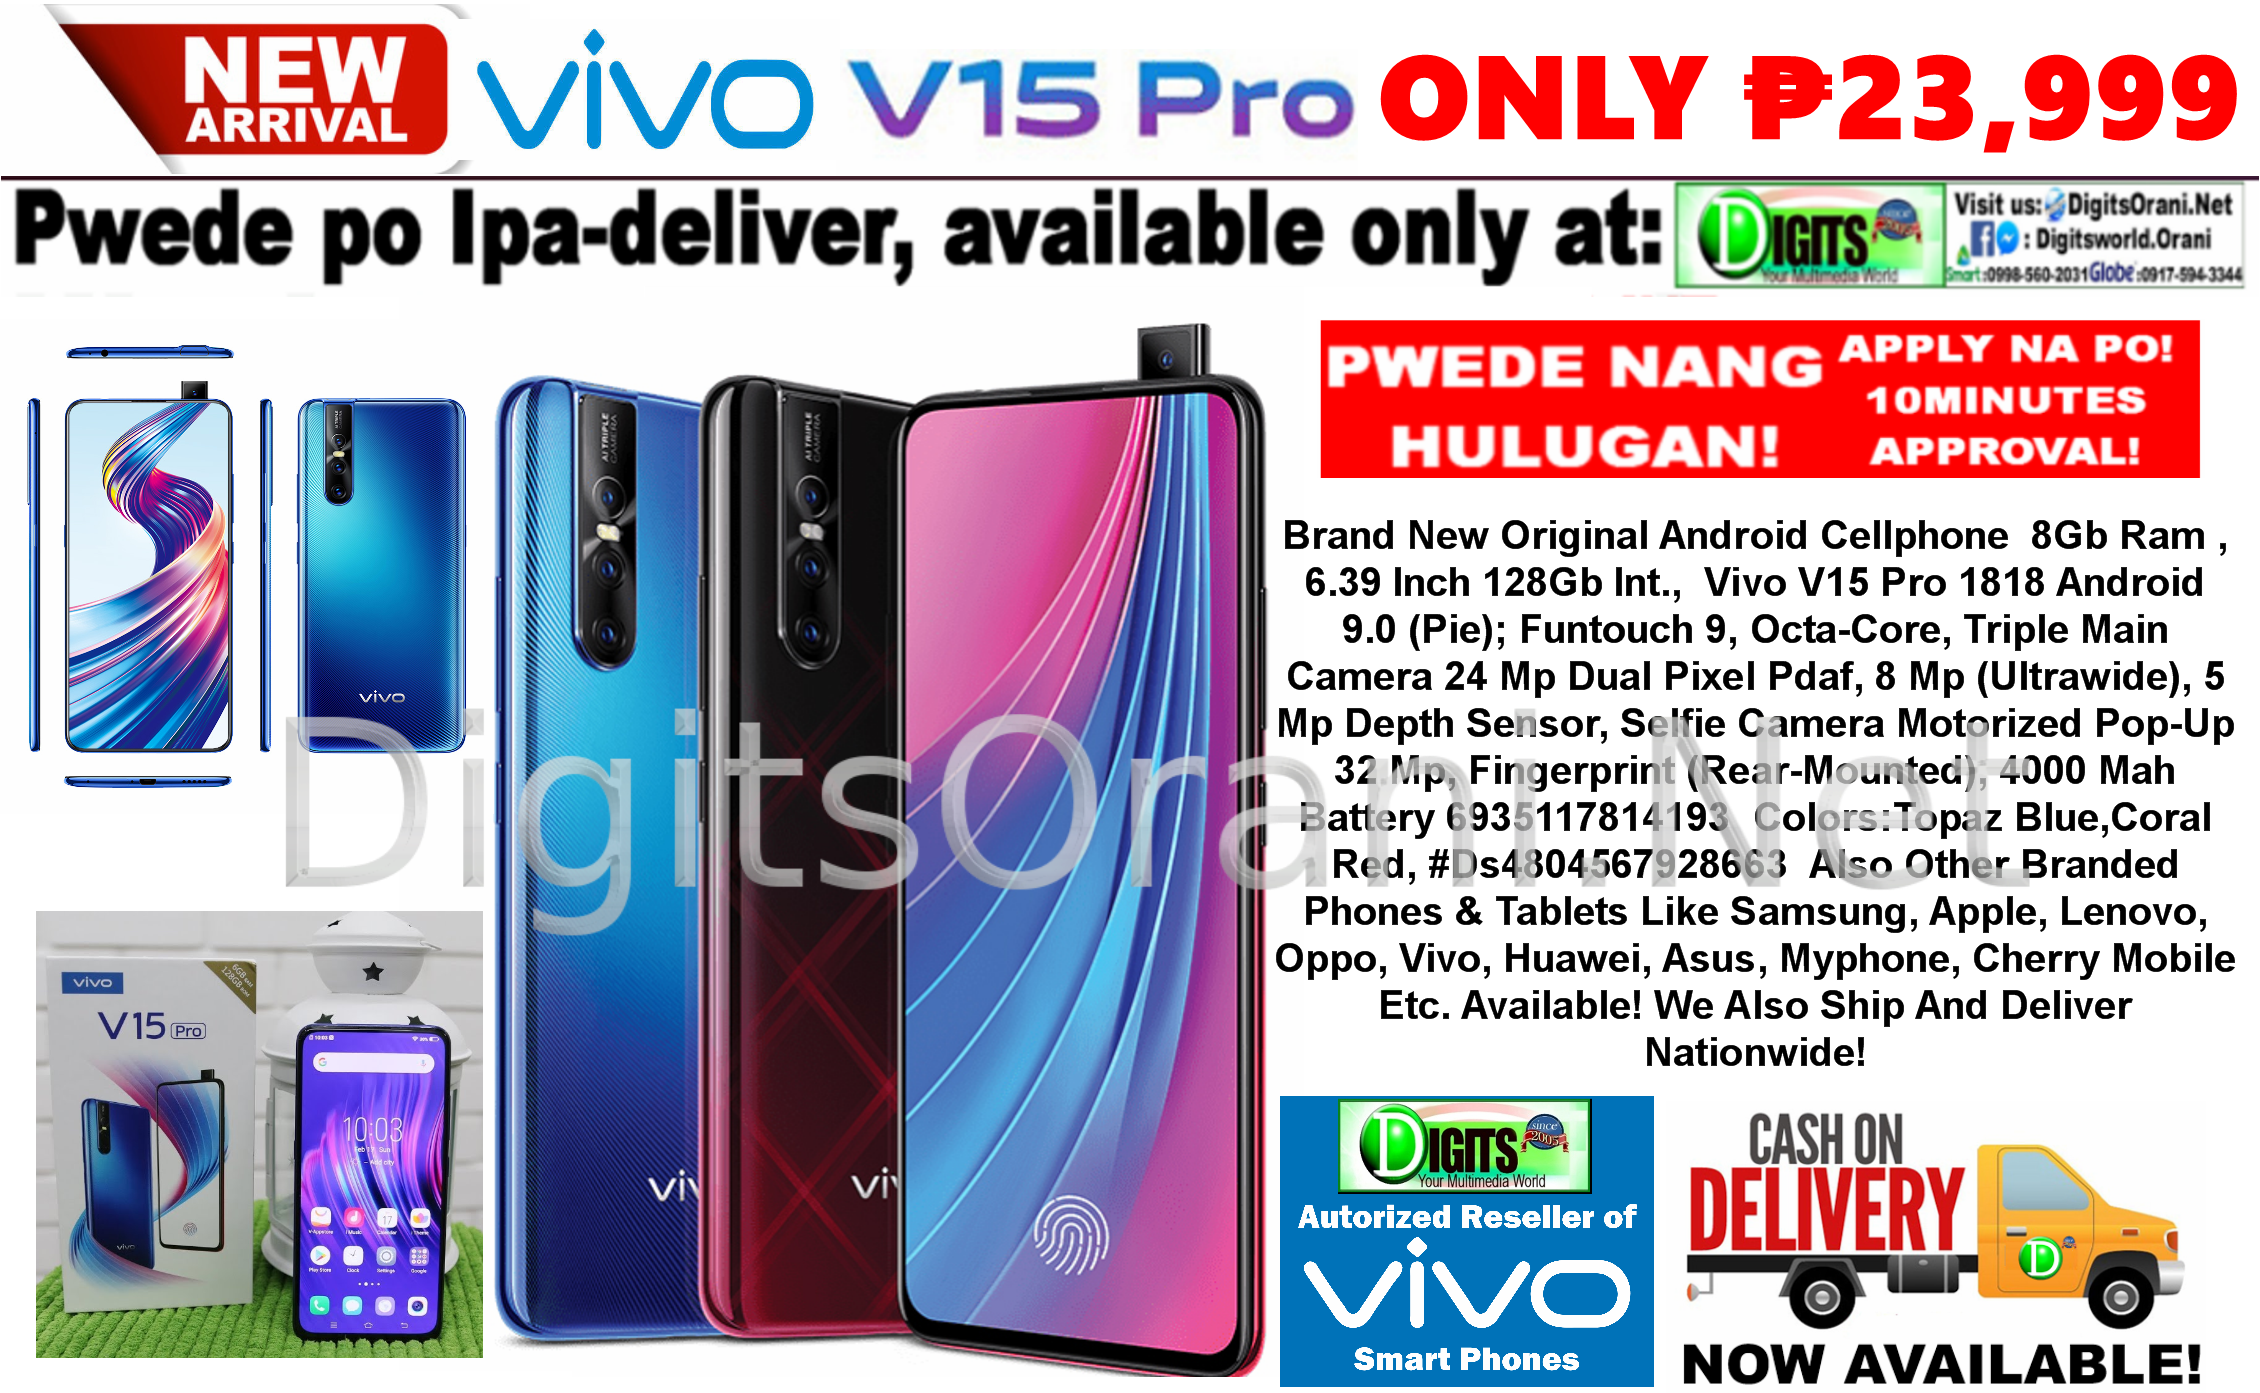 Original Android Cellphone 8Gb Ram , 6 39 Inch 128Gb Int , Vivo V15 Pro  1818 Android 9 0 (Pie)